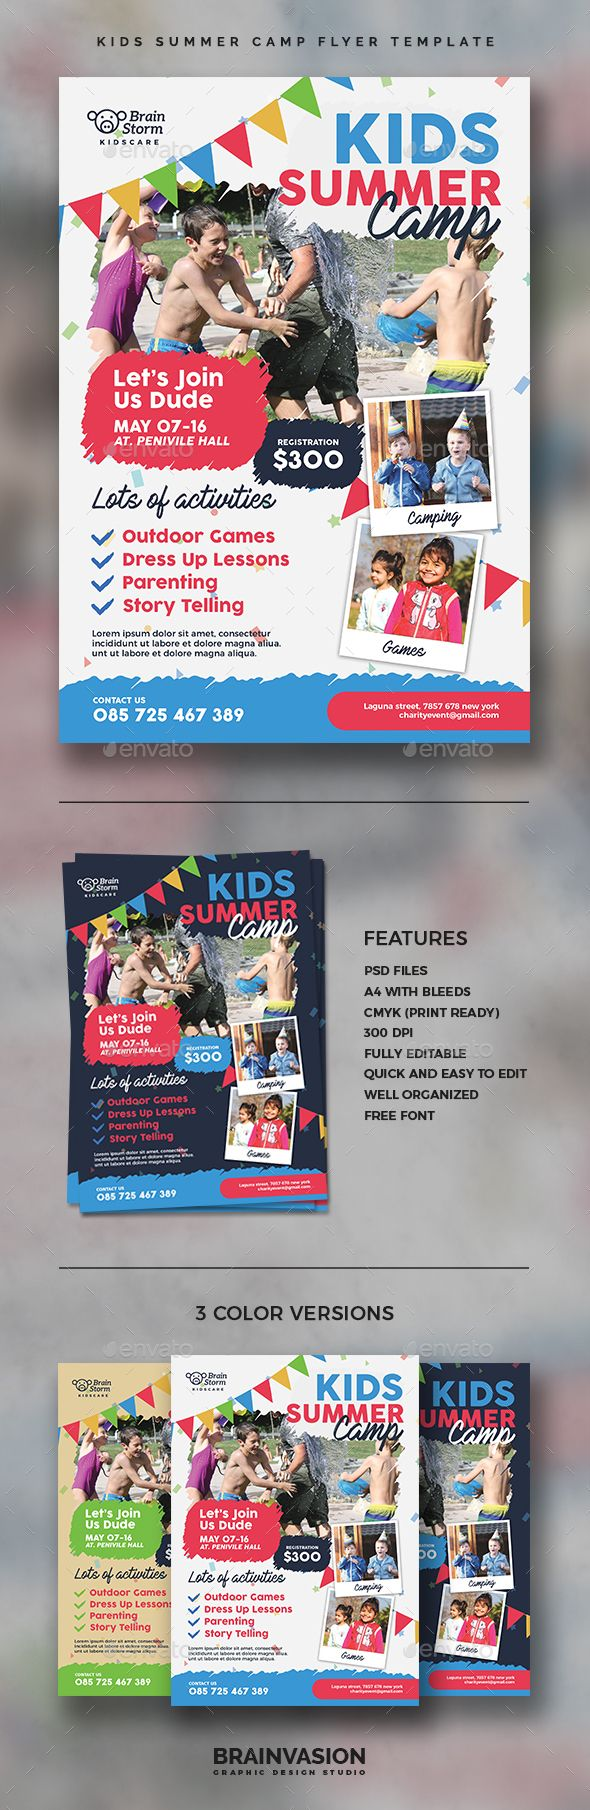 Kids #Summer Camp #Flyer #Template - Corporate Flyers Download here: https://graphicriver.net/item/kids-summer-camp-flyer-template/19808528?ref=alena994